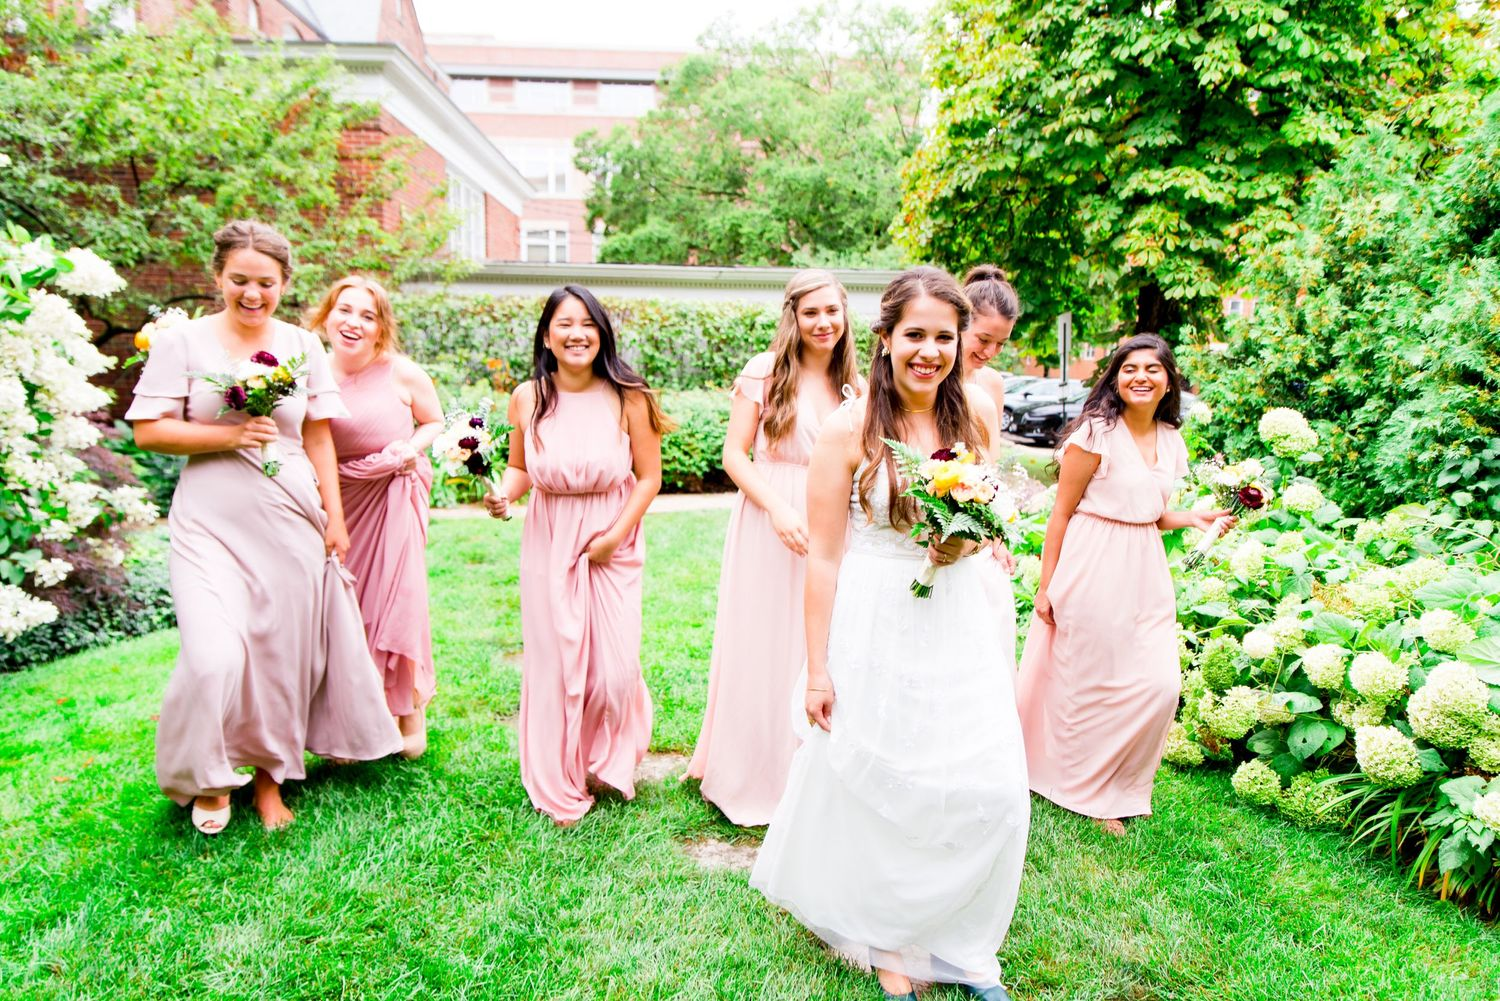 bride and bridesmaids in blush dresses walking through the Woman's Club of Evanston garden in the summer